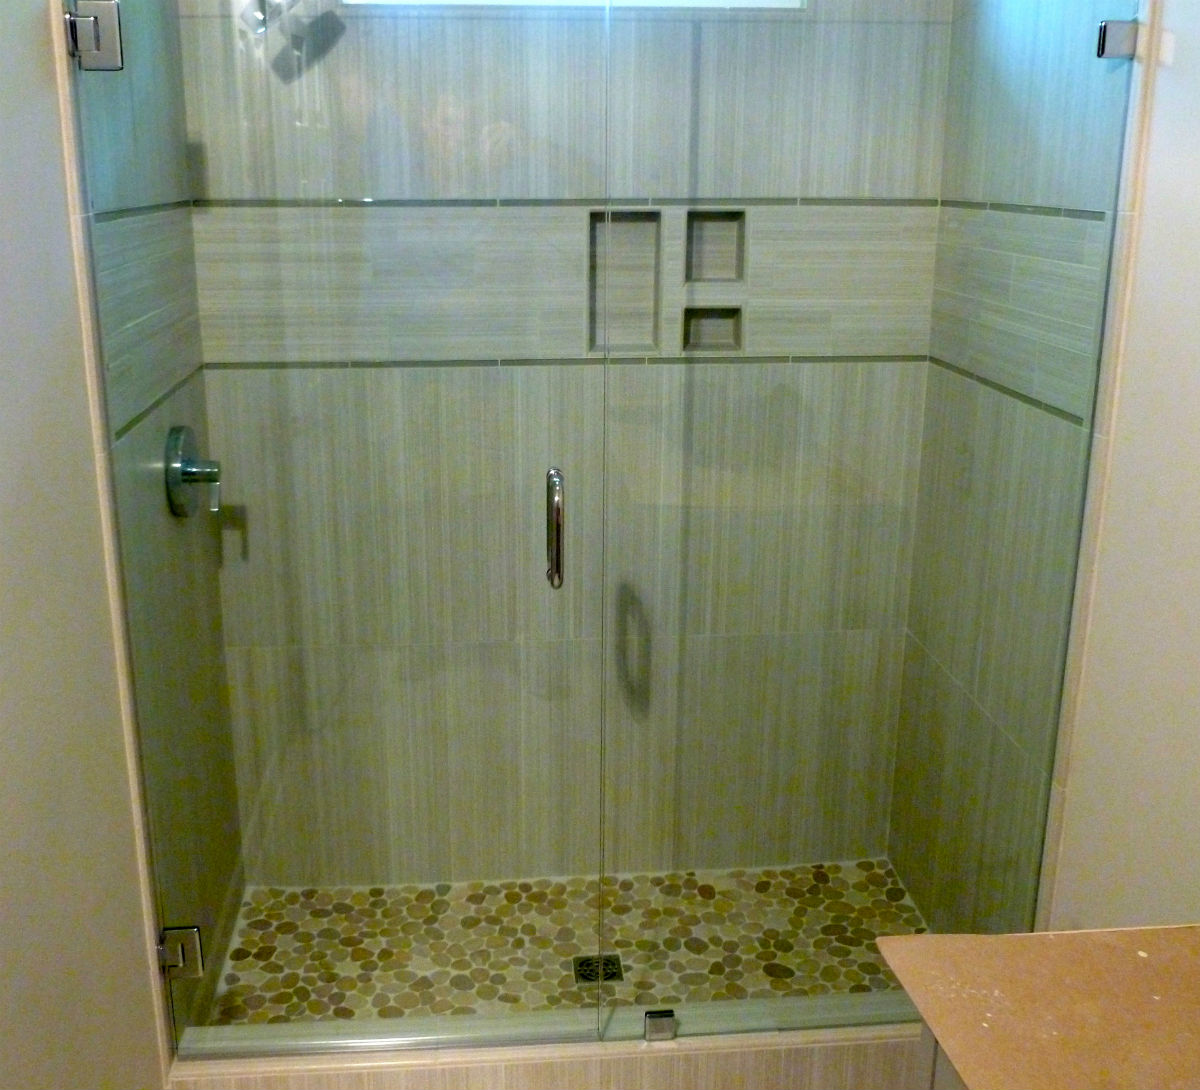 Uncategorized Archives Page Of Frameless Shower Doors - Bathroom remodeling mechanicsville va